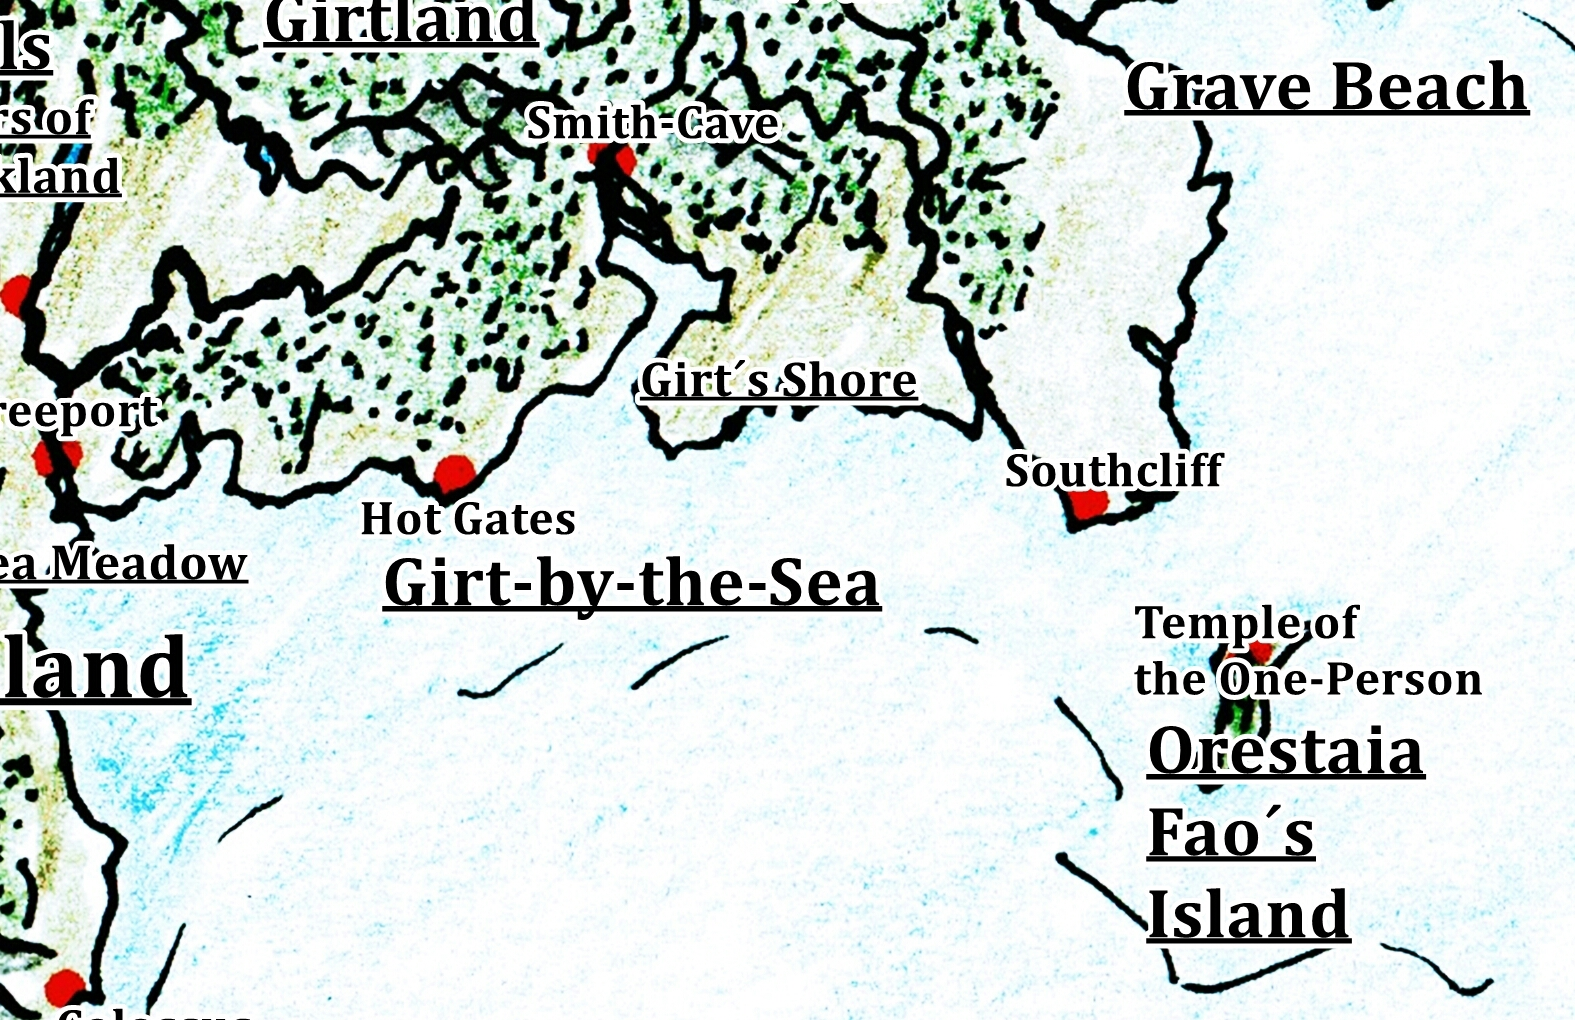 Girt-by-the-Sea